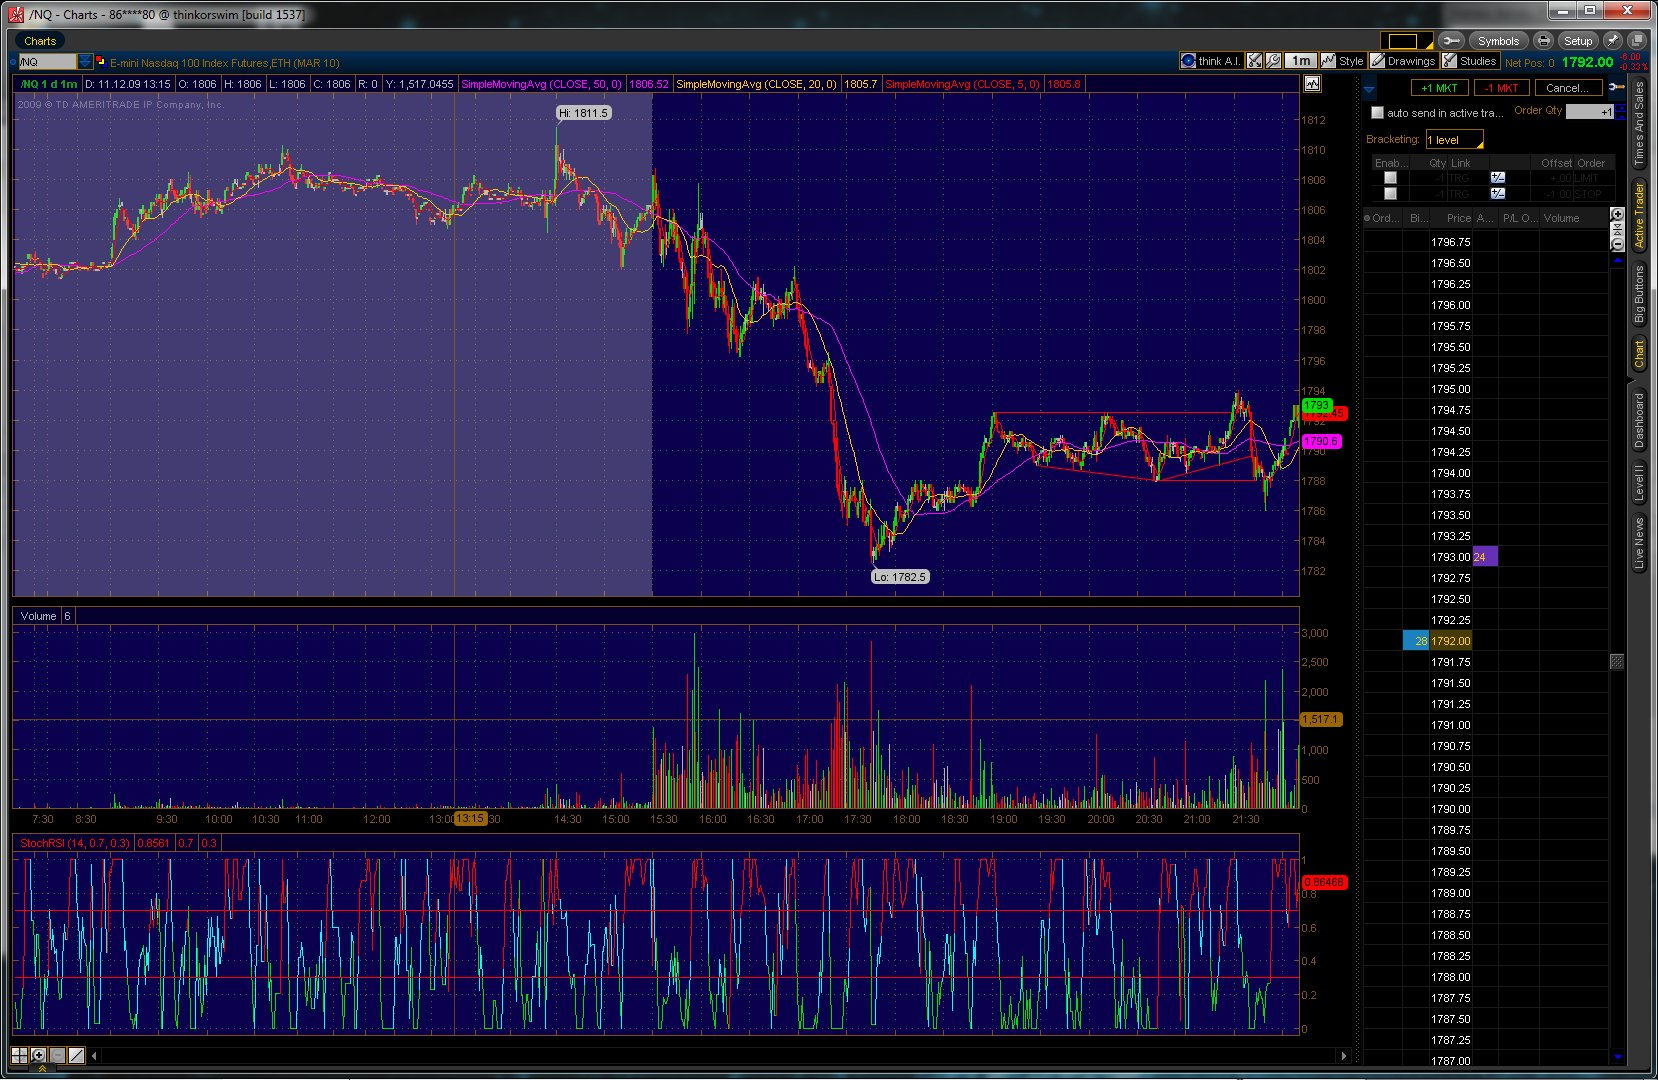 Day trading options vs futures